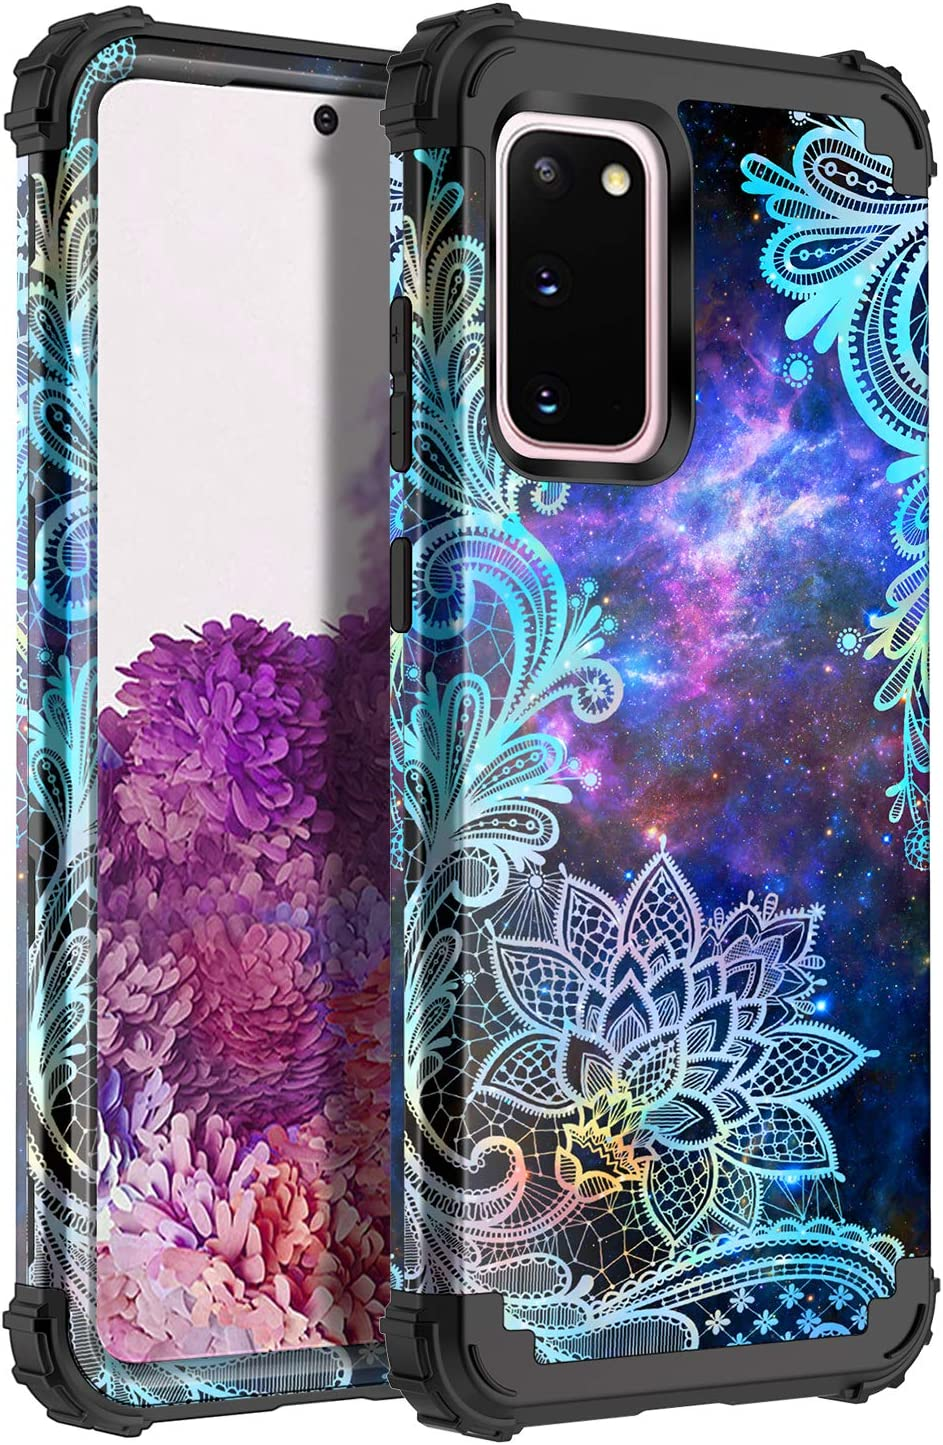 Casetego Compatible with Galaxy S20 Case,Floral Three Layer Heavy Duty Hybrid Sturdy Shockproof Full Body Protective Cover Case for Samsung Galaxy S20 6.4 inch,Blue Mandala